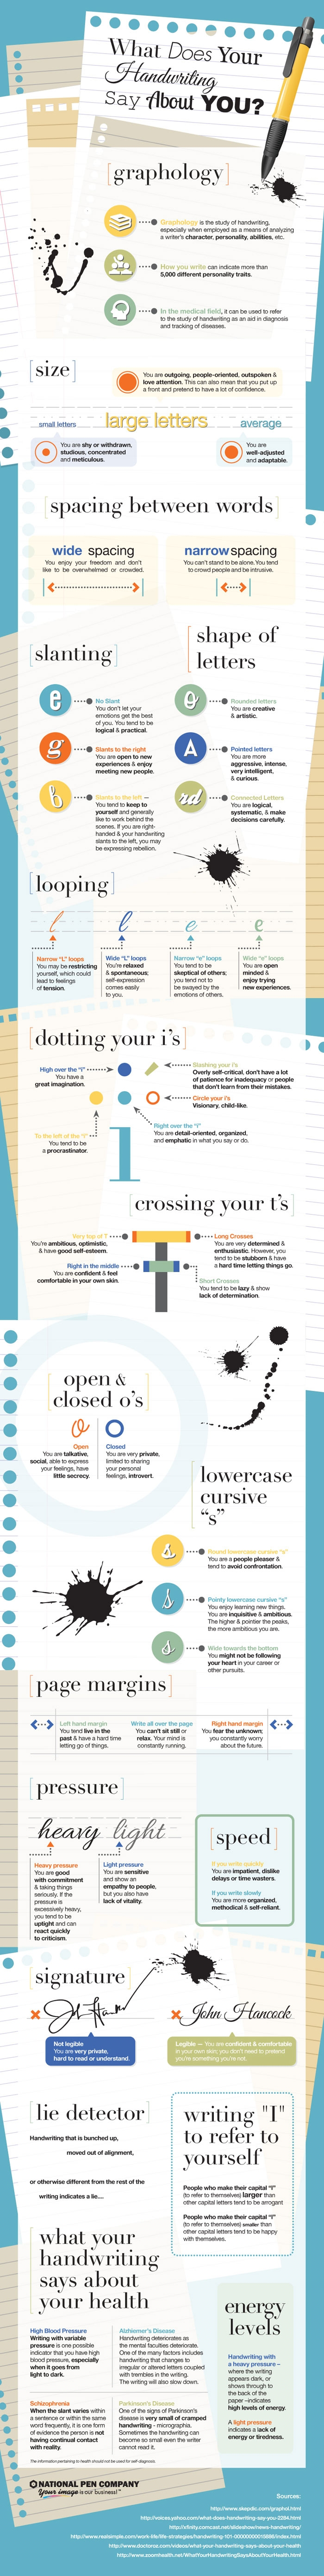 What does your handwriting font say about you? Check out this cool infographic @ Darcy Baldwin Fonts!